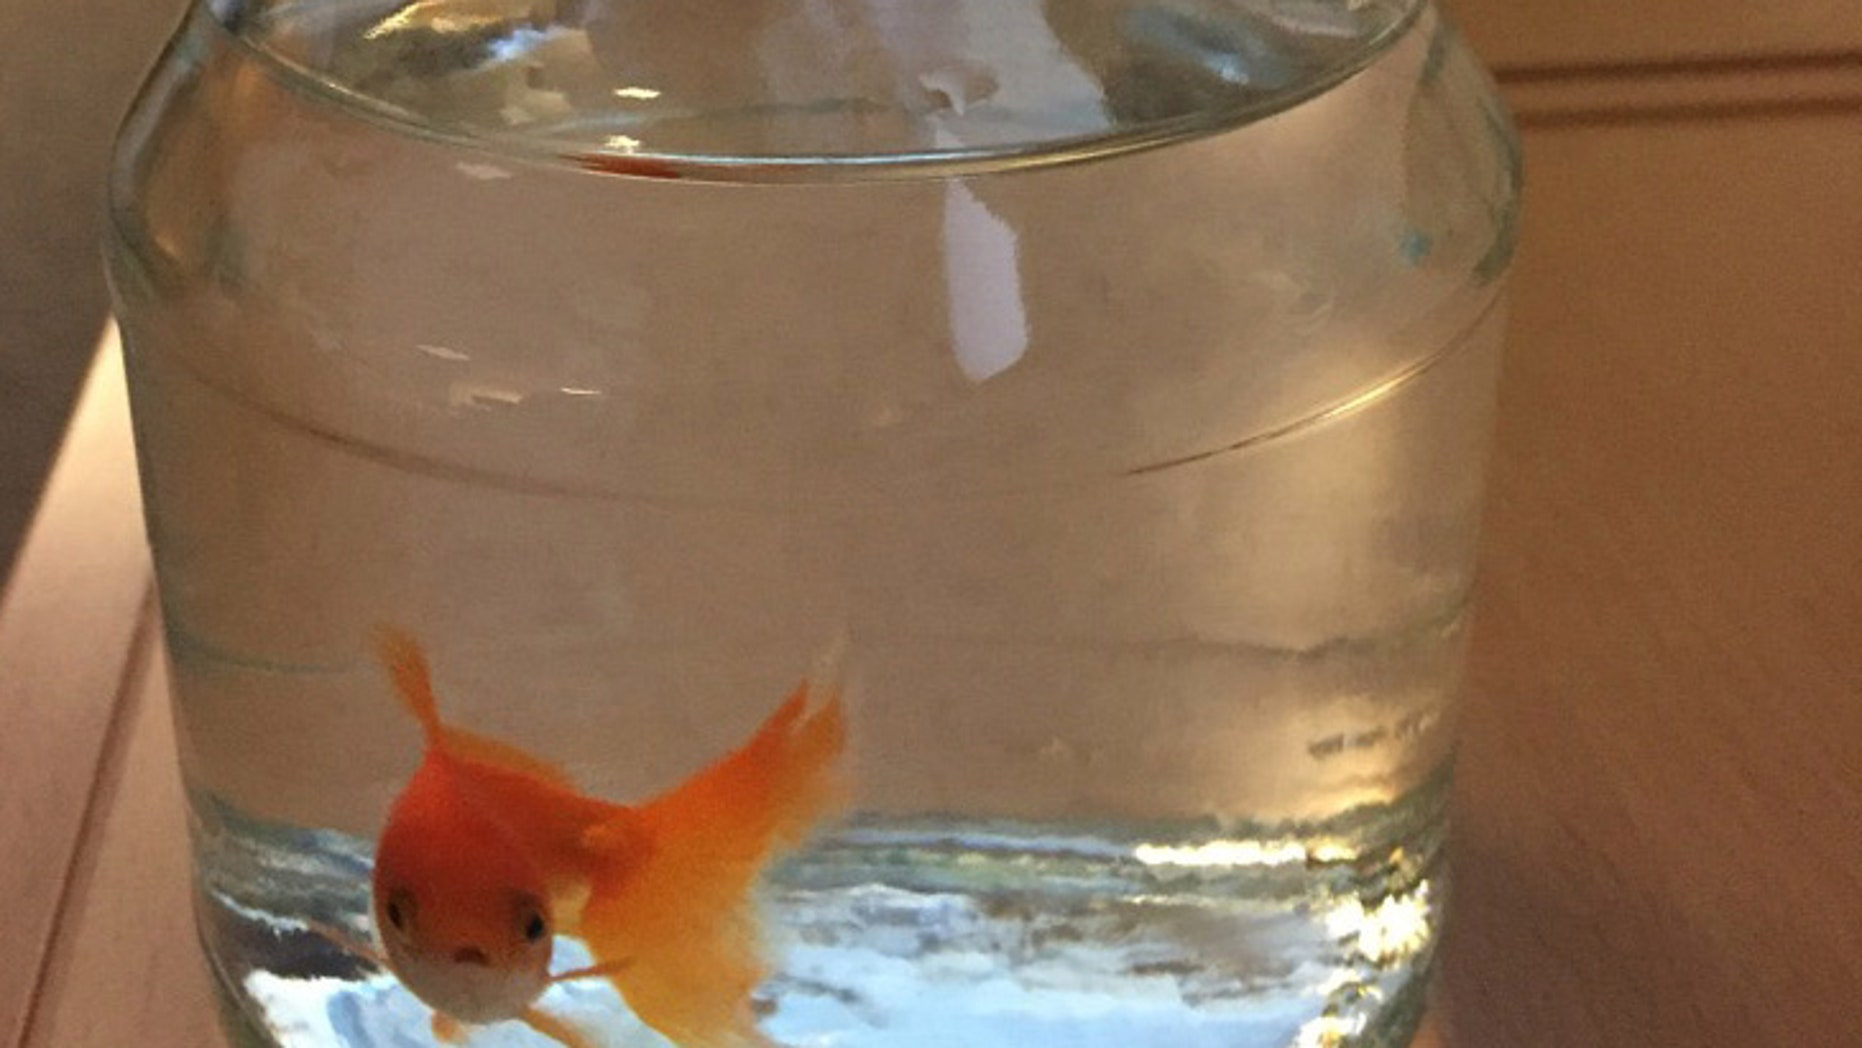 A goldfish swims inside a jar at the police station in Bodo, Norway.